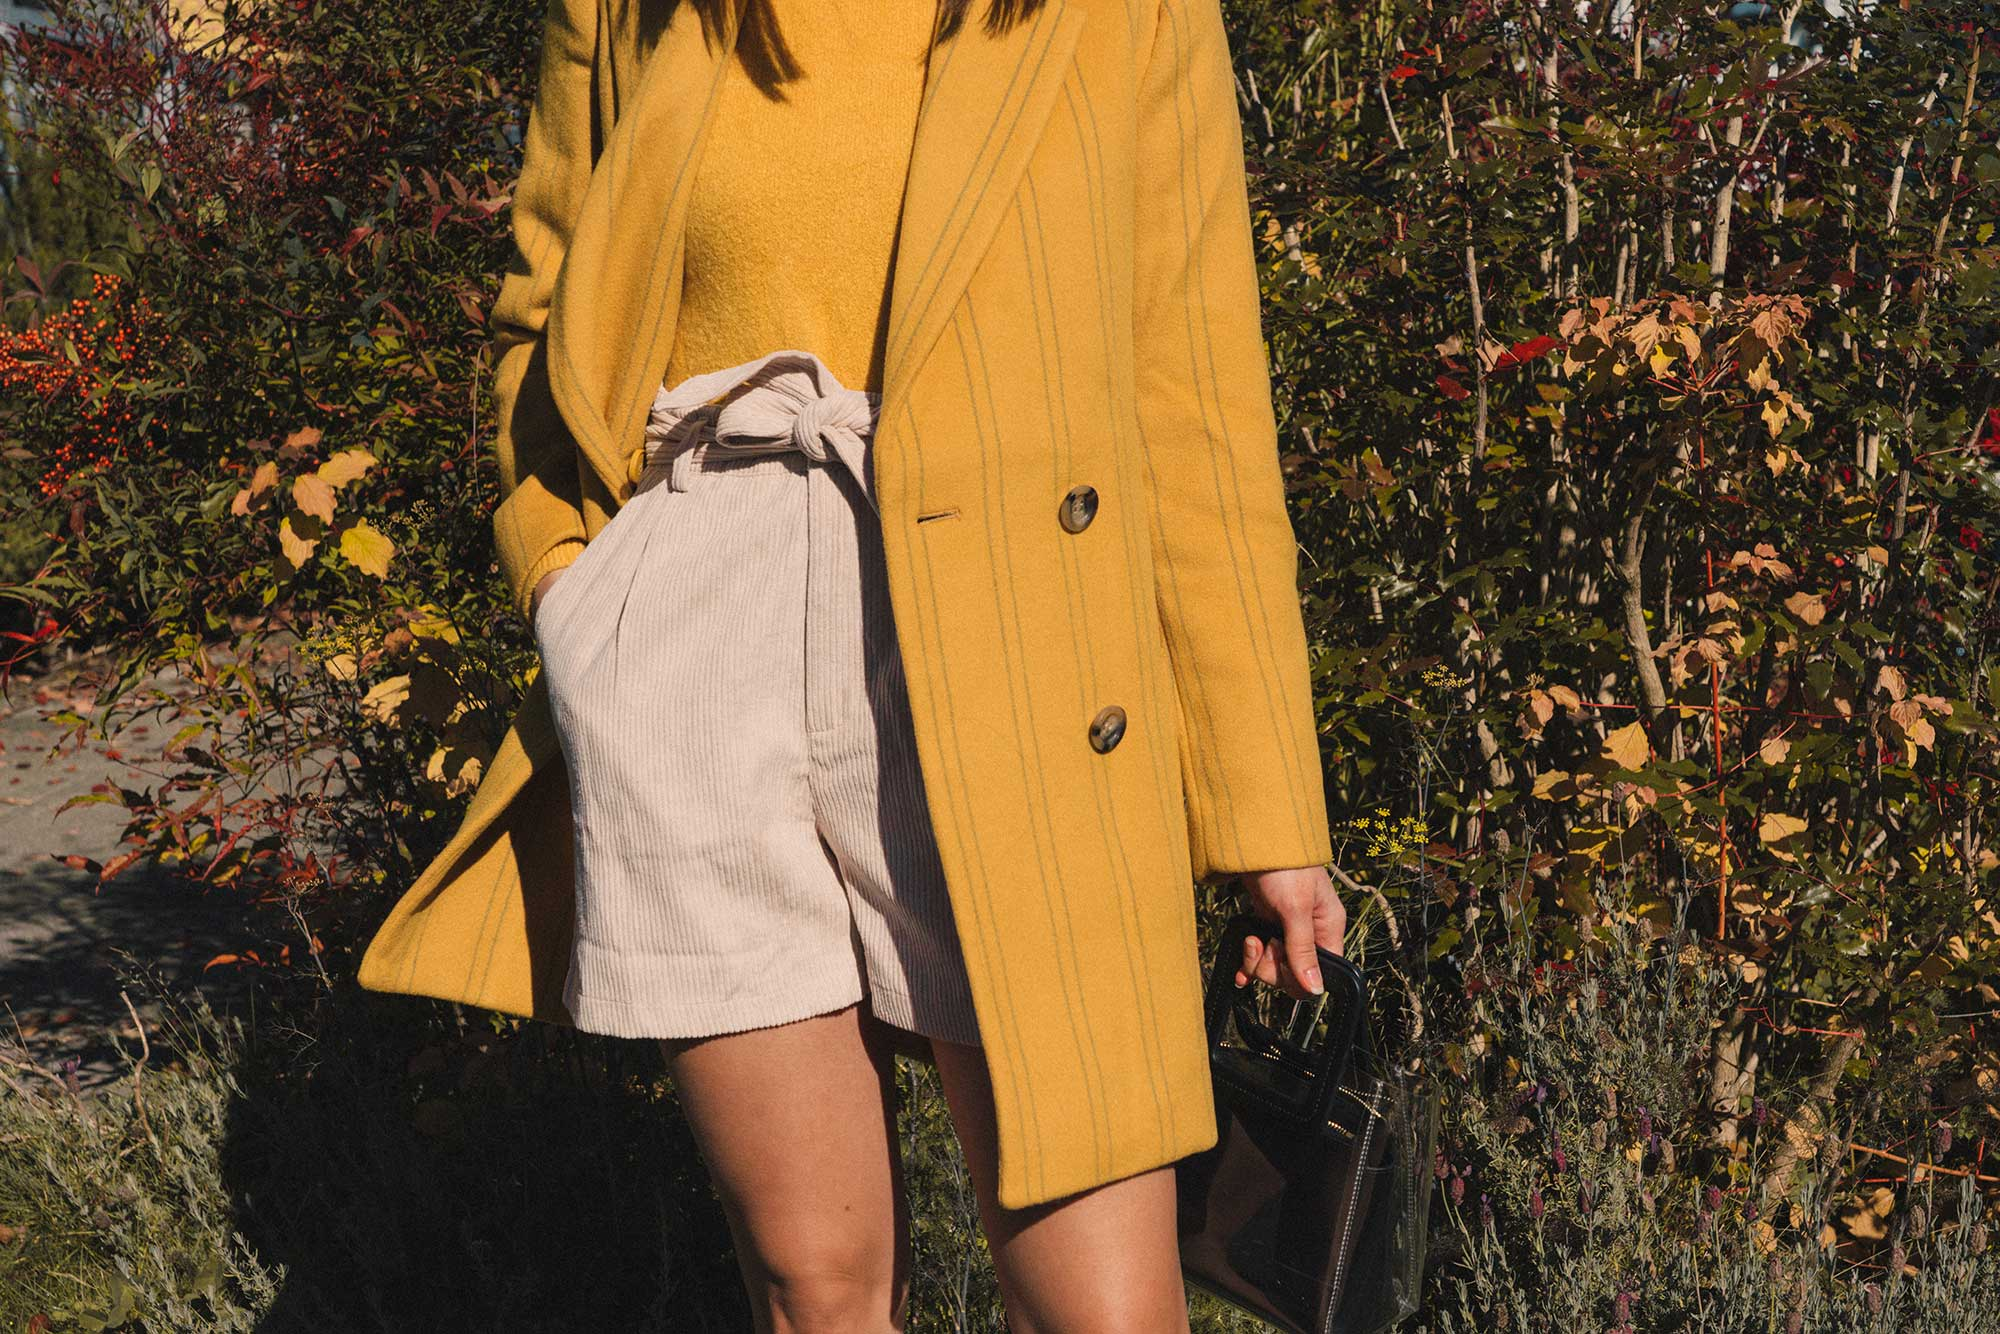 Madewell Hollis Double-Breasted Stripe Yellow Blazer Coat, corduroy shorts, fall outfit, fall leaves in Seattle 11.jpg